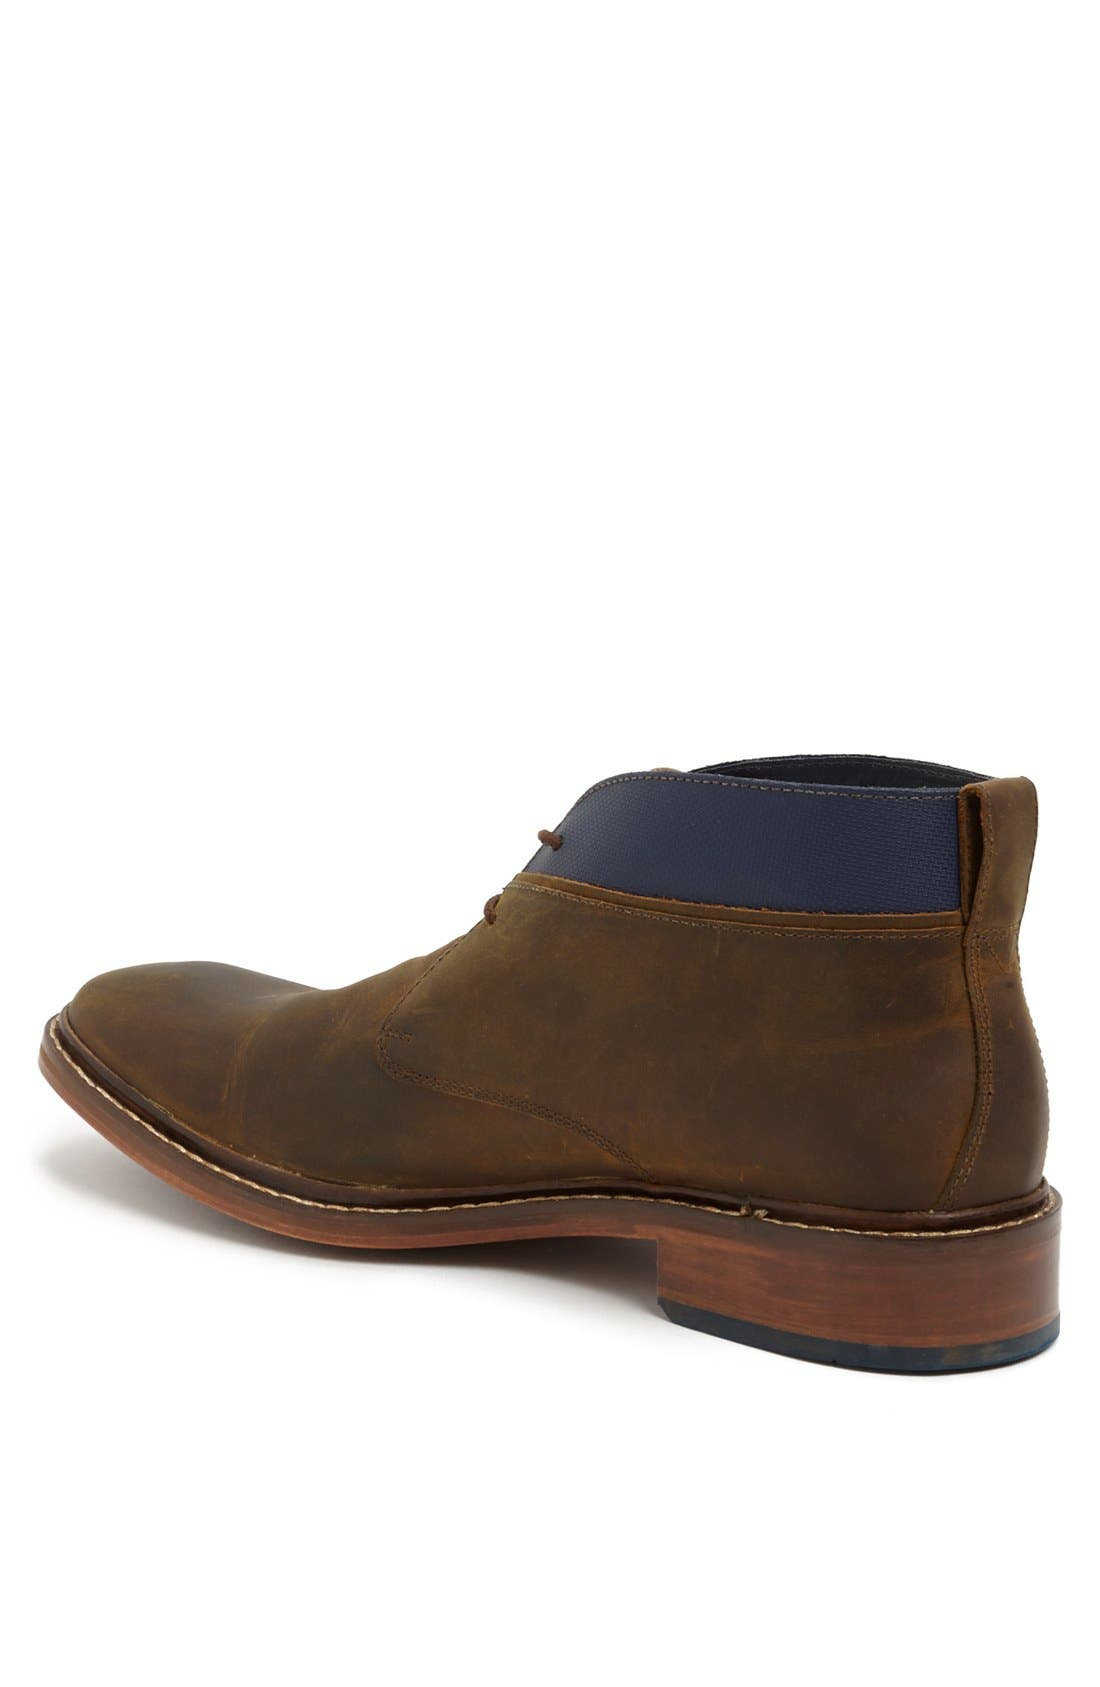 'Colton' Chukka Boot,                             Alternate thumbnail 2, color,                             COPPER/ PEACOAT LEATHER